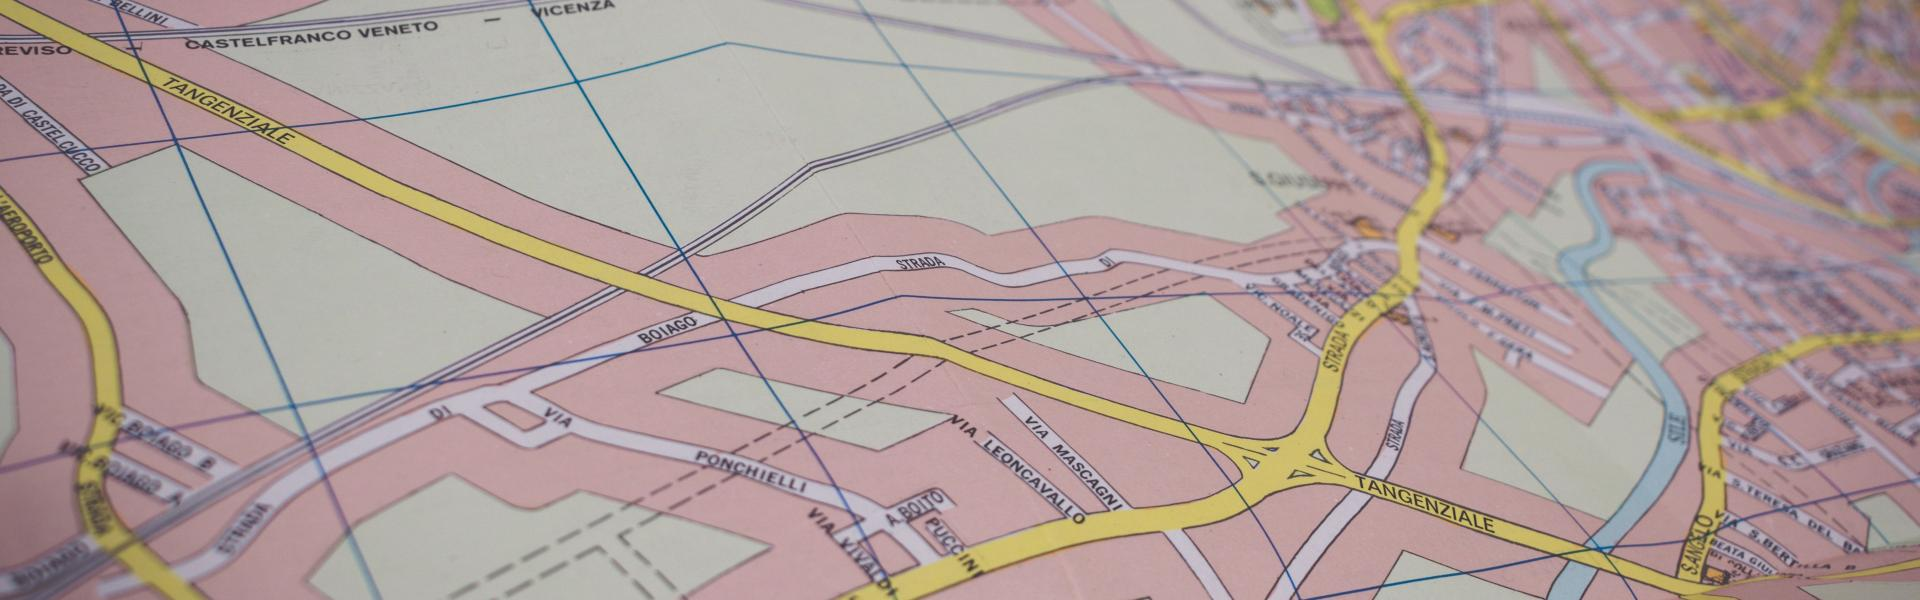 Overhead map view with roads